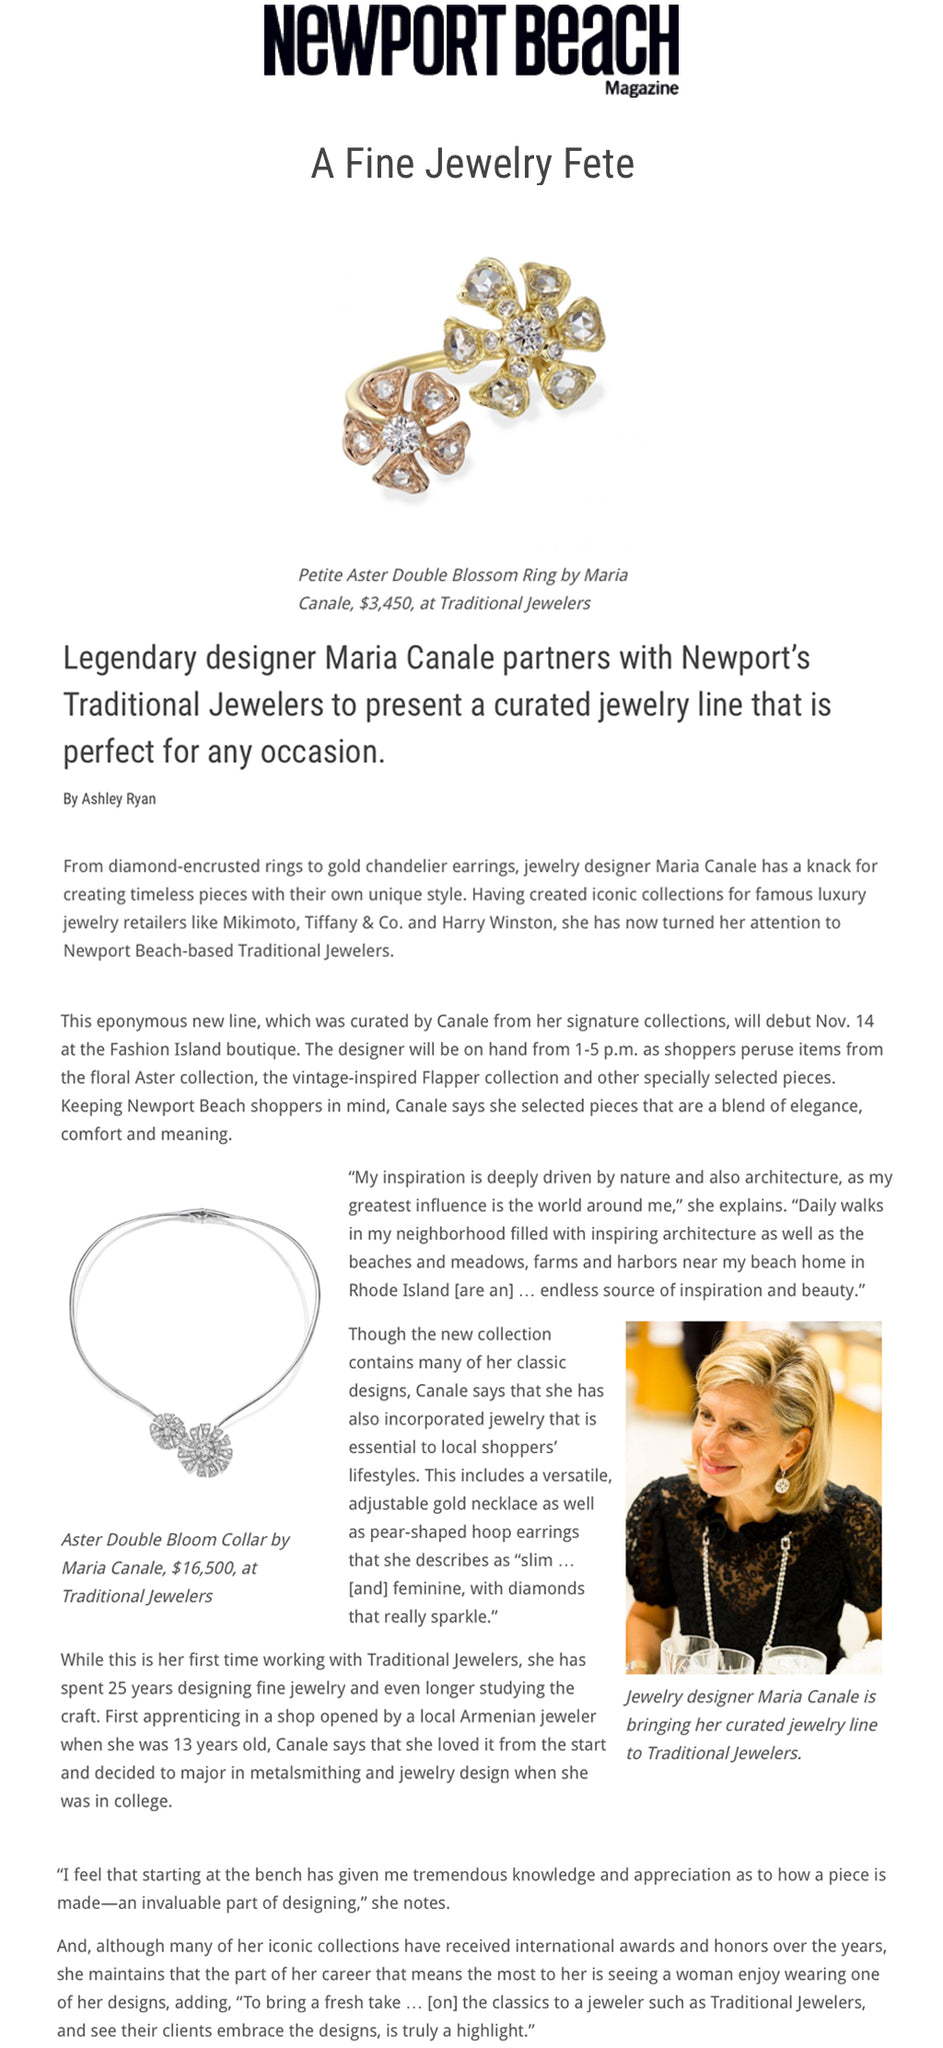 Maria Canale partners with Newport's Traditional Jewelers to present a curated jewelry line that is perfect for any occasion.